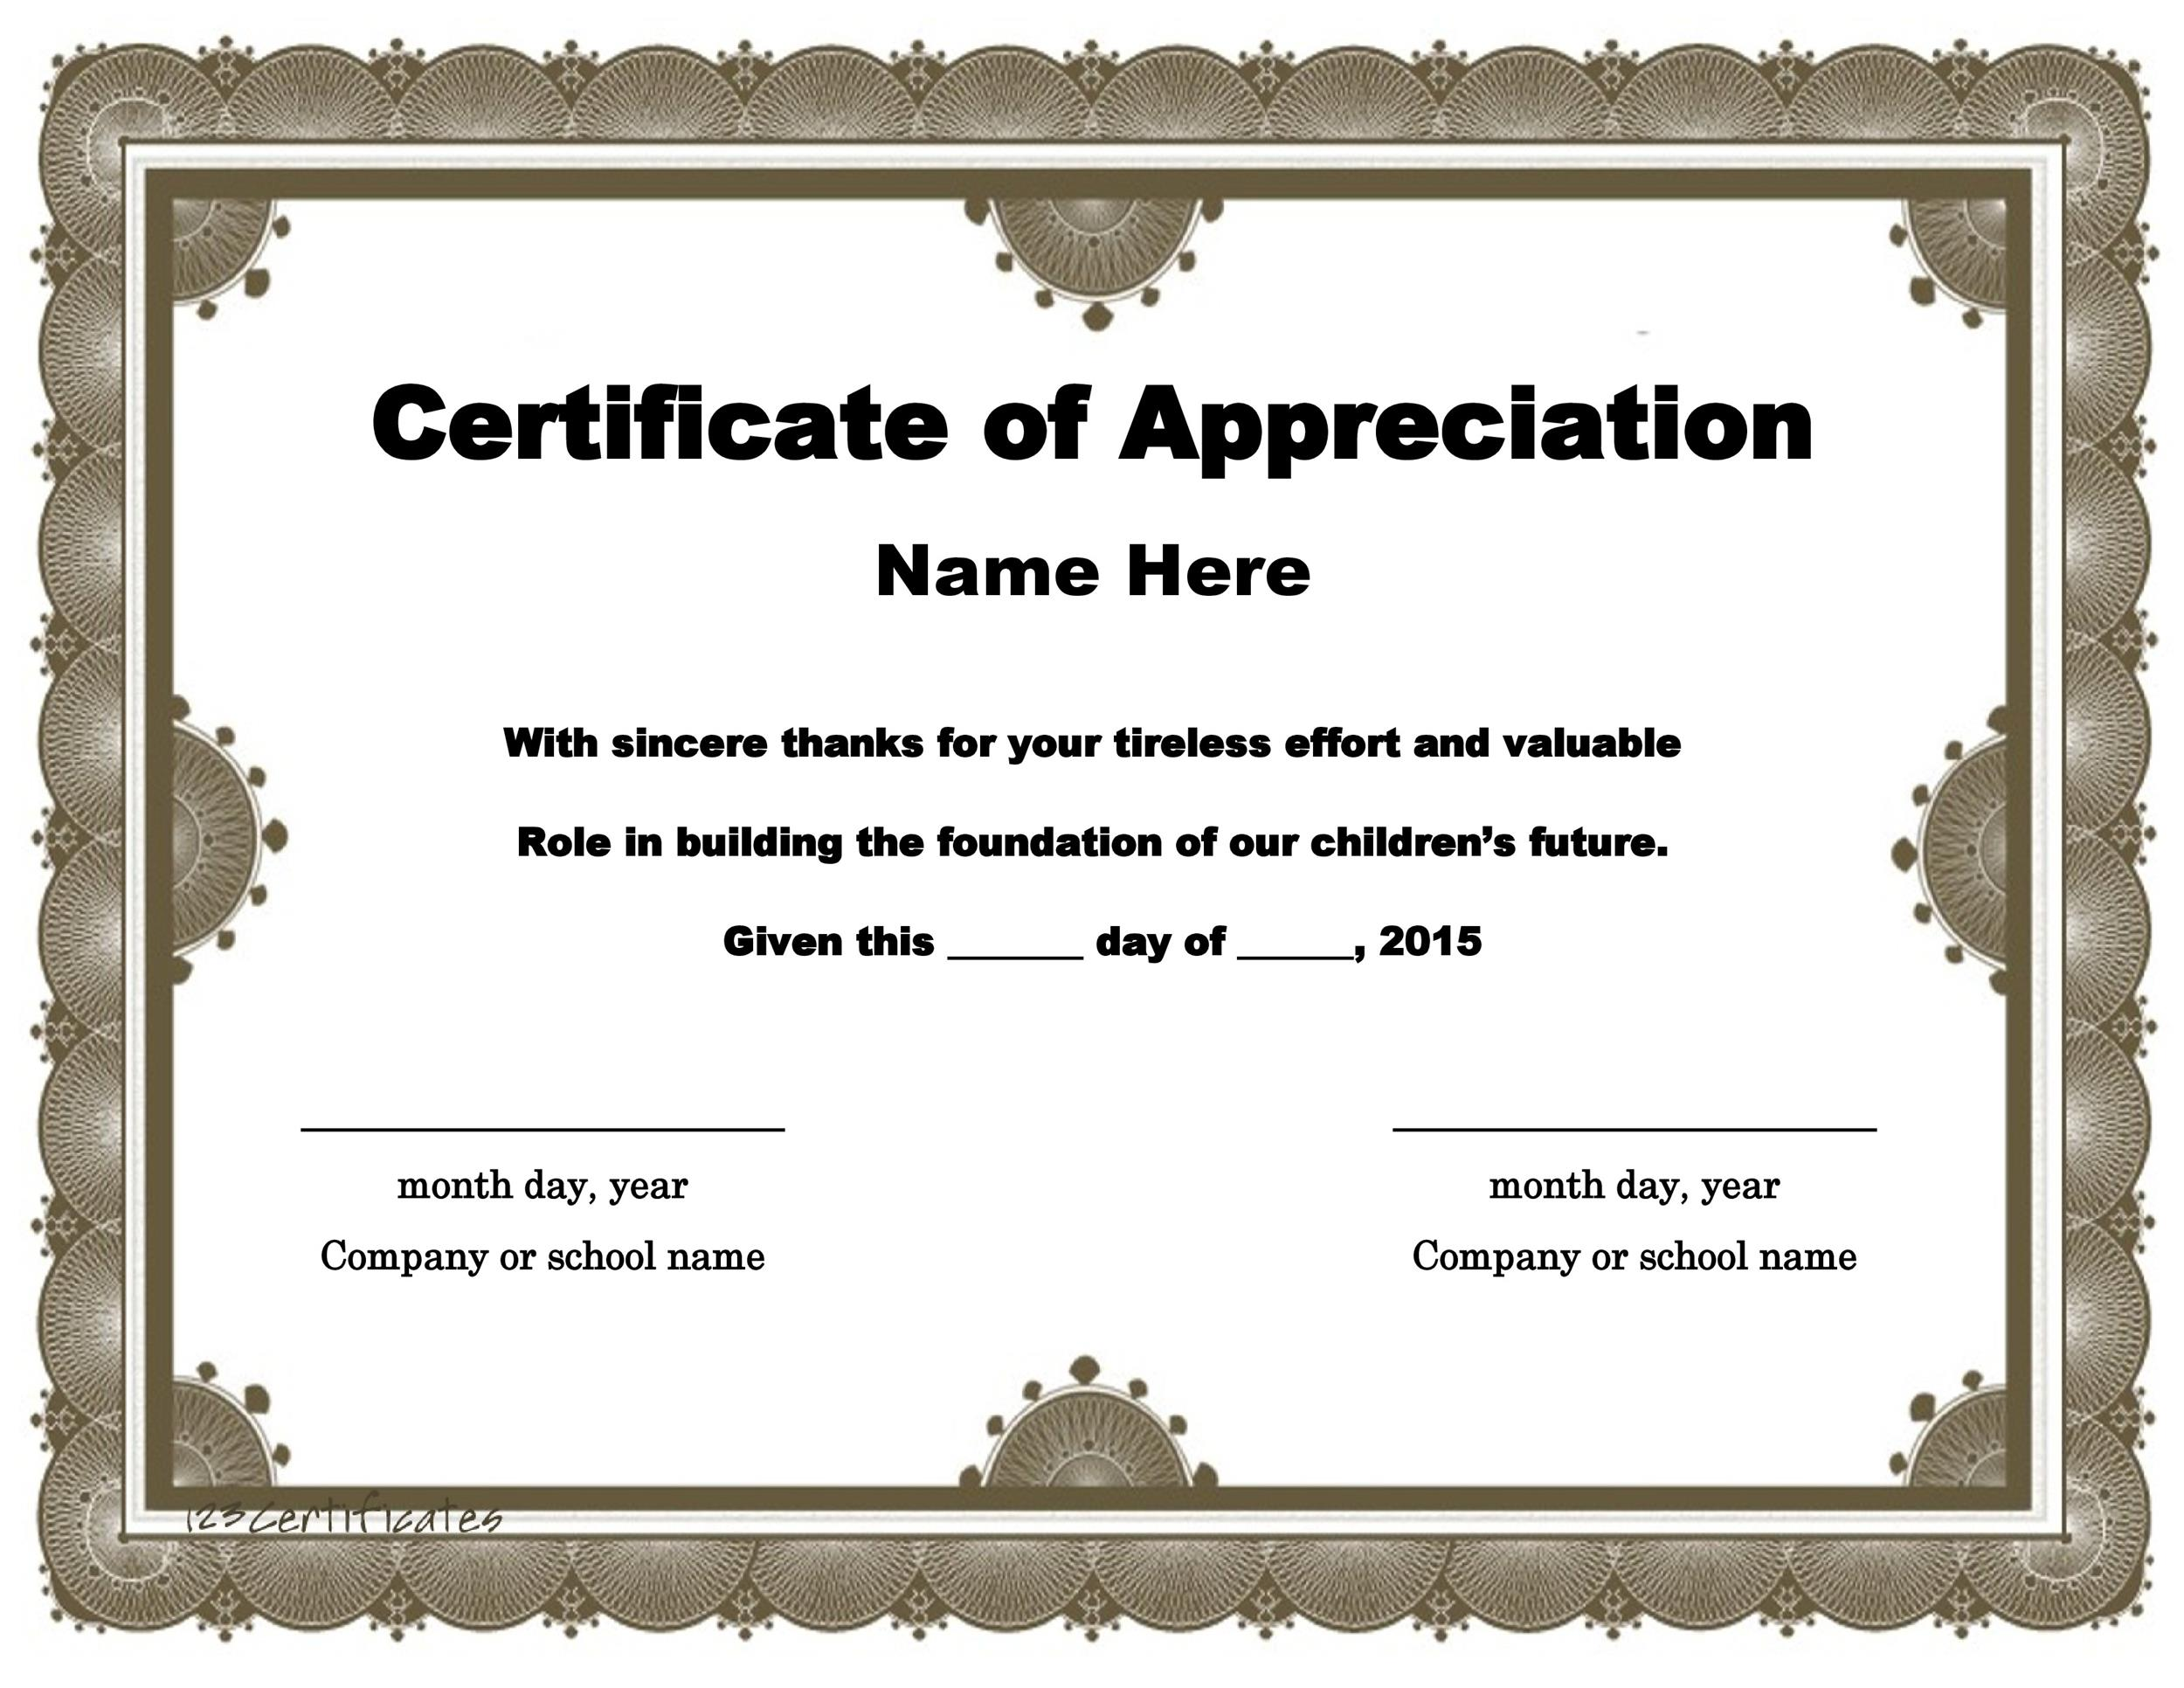 Sample certificate of appreciation ppt new fresh certificate printable certificate of appreciation 03 toneelgroepblik Image collections